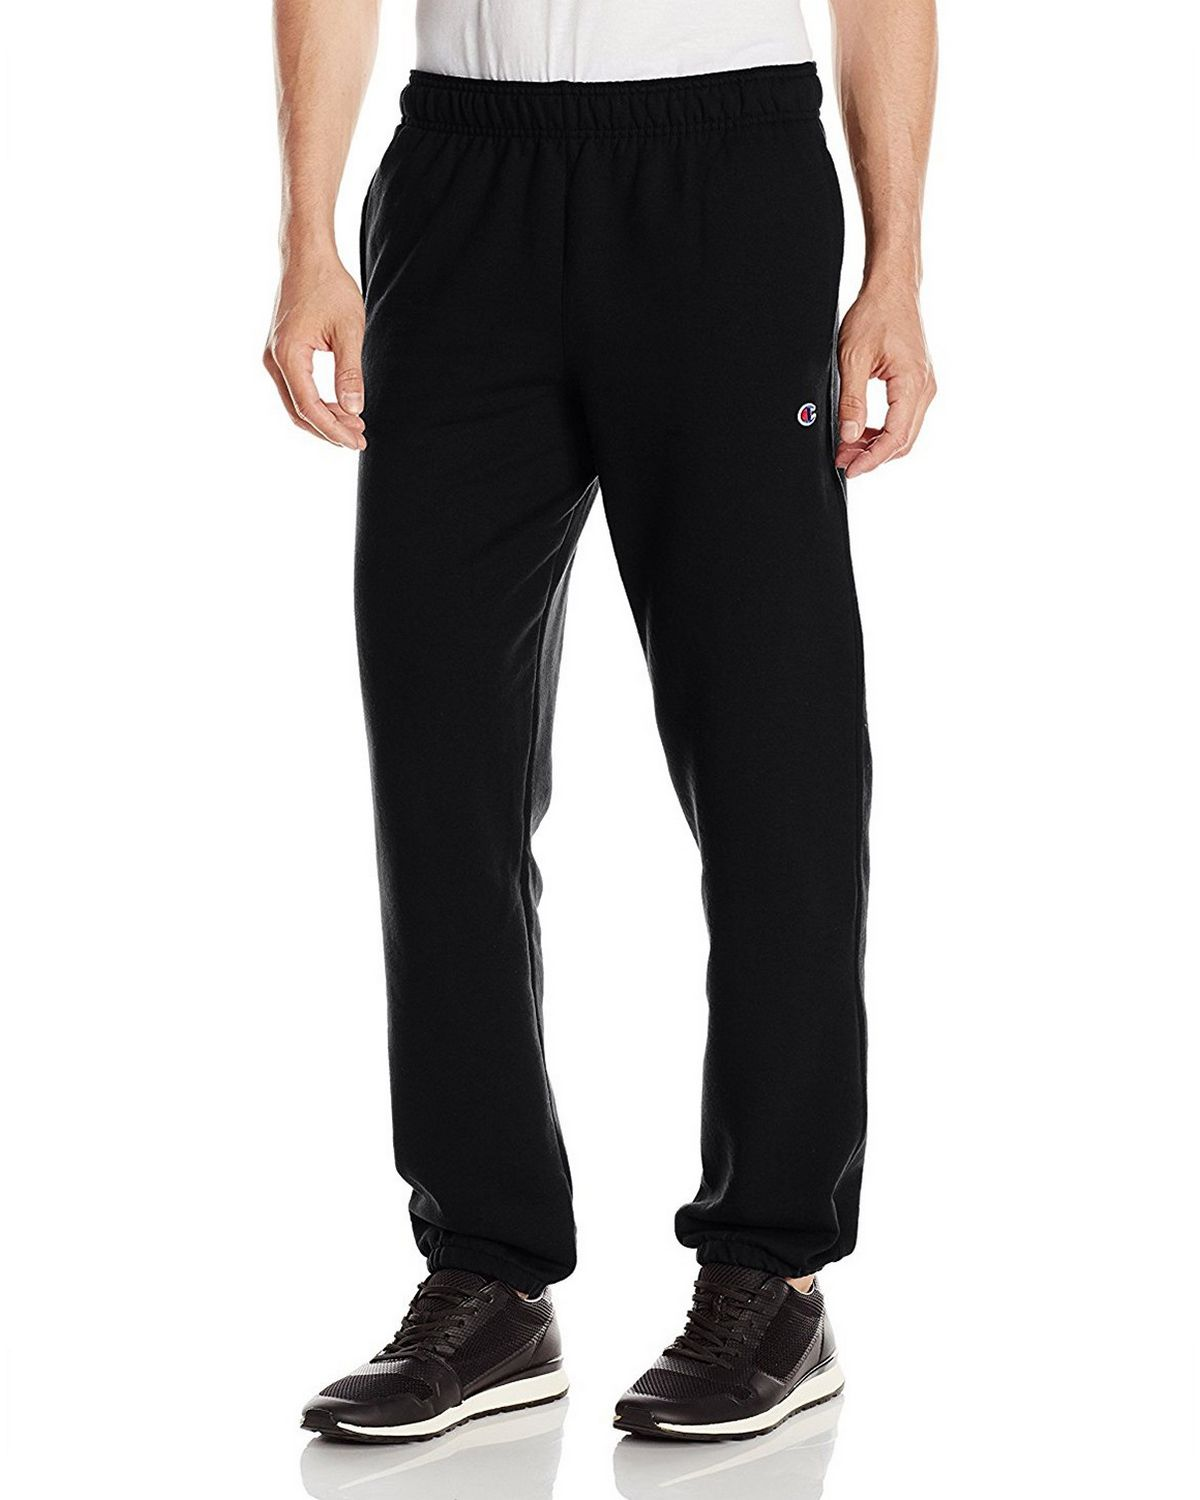 Champion P0894 Mens Powerblend Fleece Pants - Oxford Grey - XL P0894